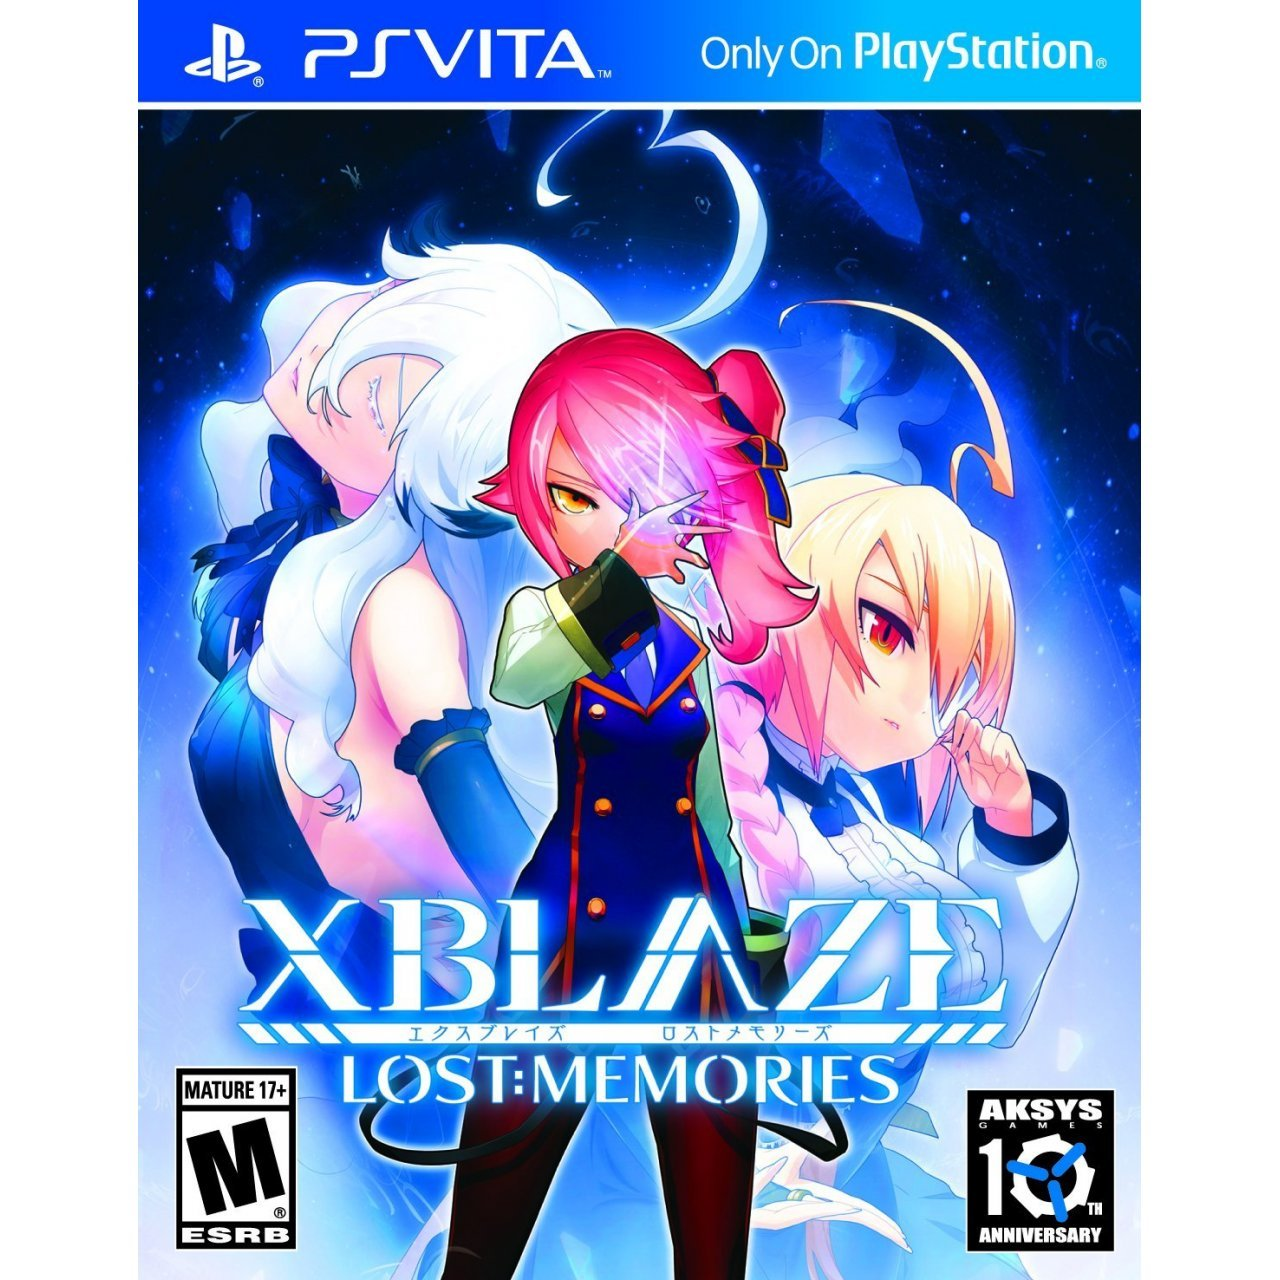 XBLAZE: LOST MEMORIES for PS Vita